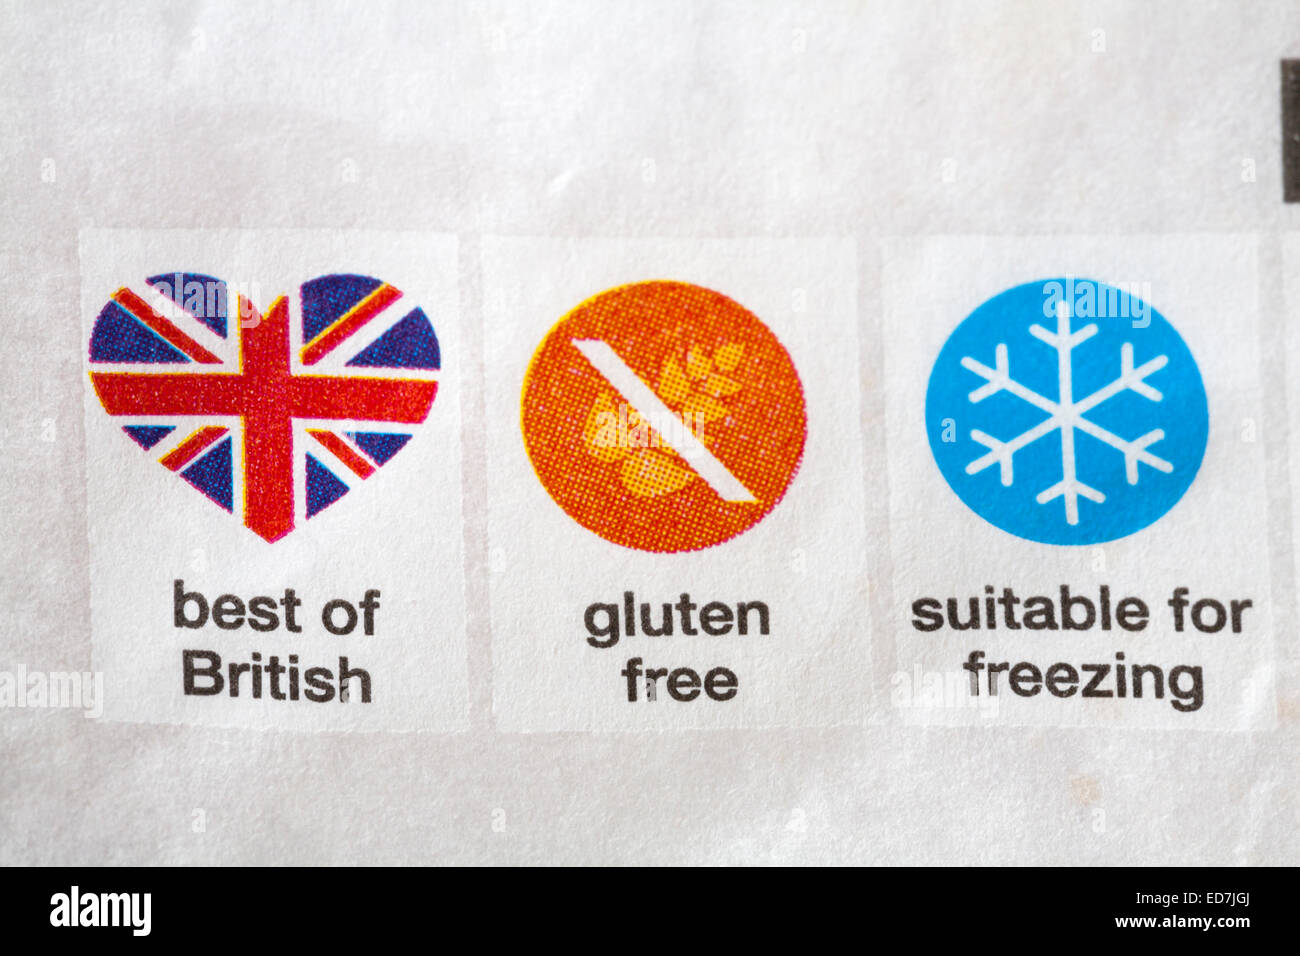 Best of british gluten free suitable for freezing symbols on food best of british gluten free suitable for freezing symbols on food packaging biocorpaavc Gallery